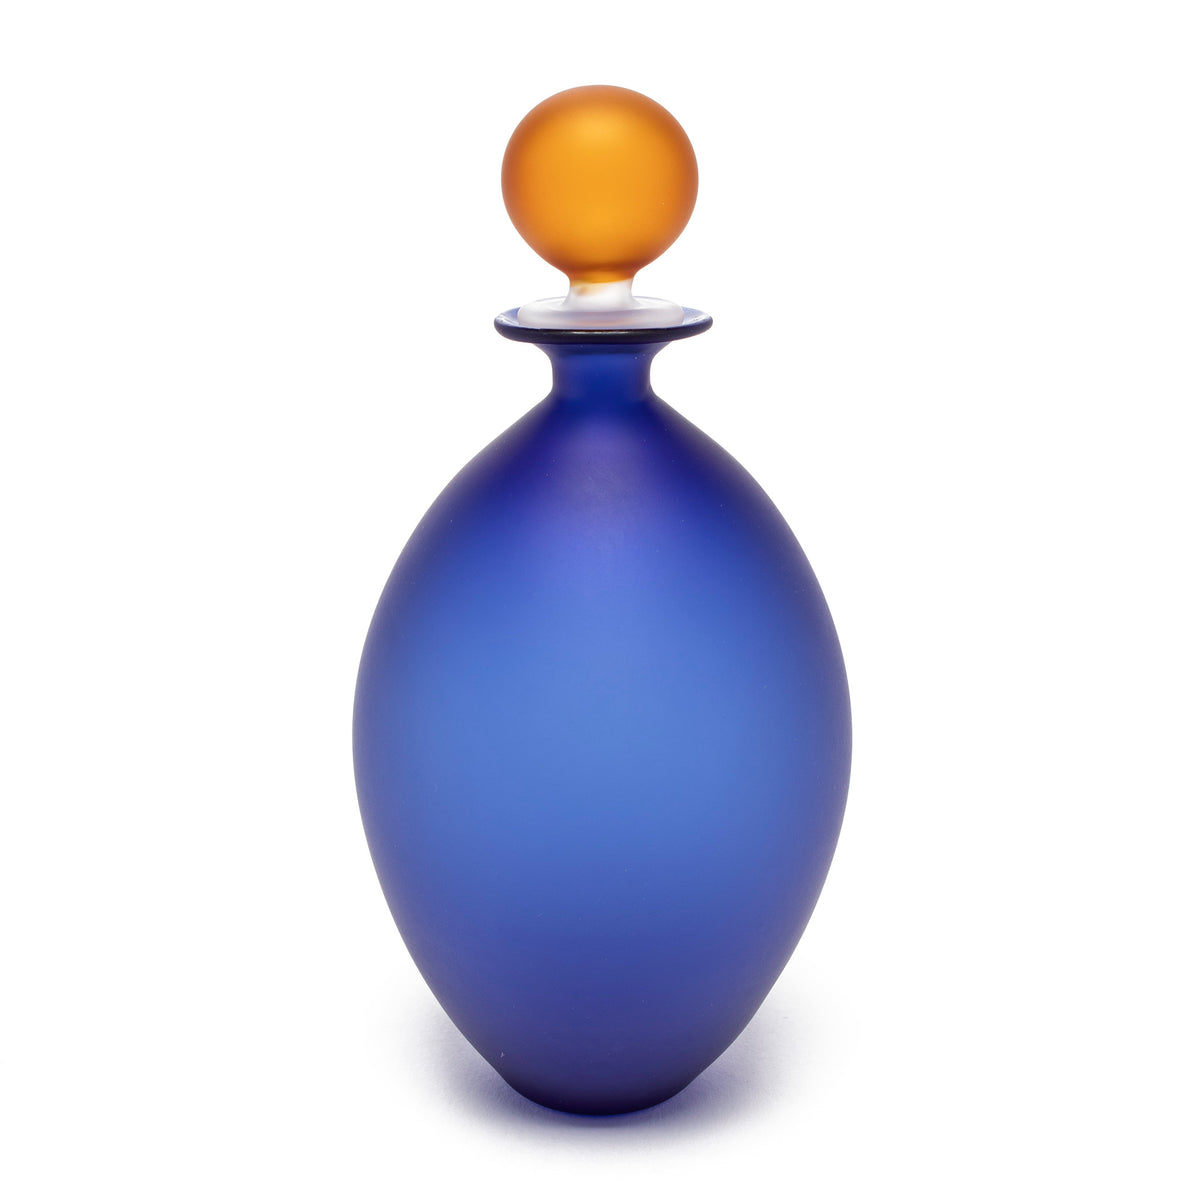 Murano Glass Perfume Bottle - Medium Long Style in Blue/Amber